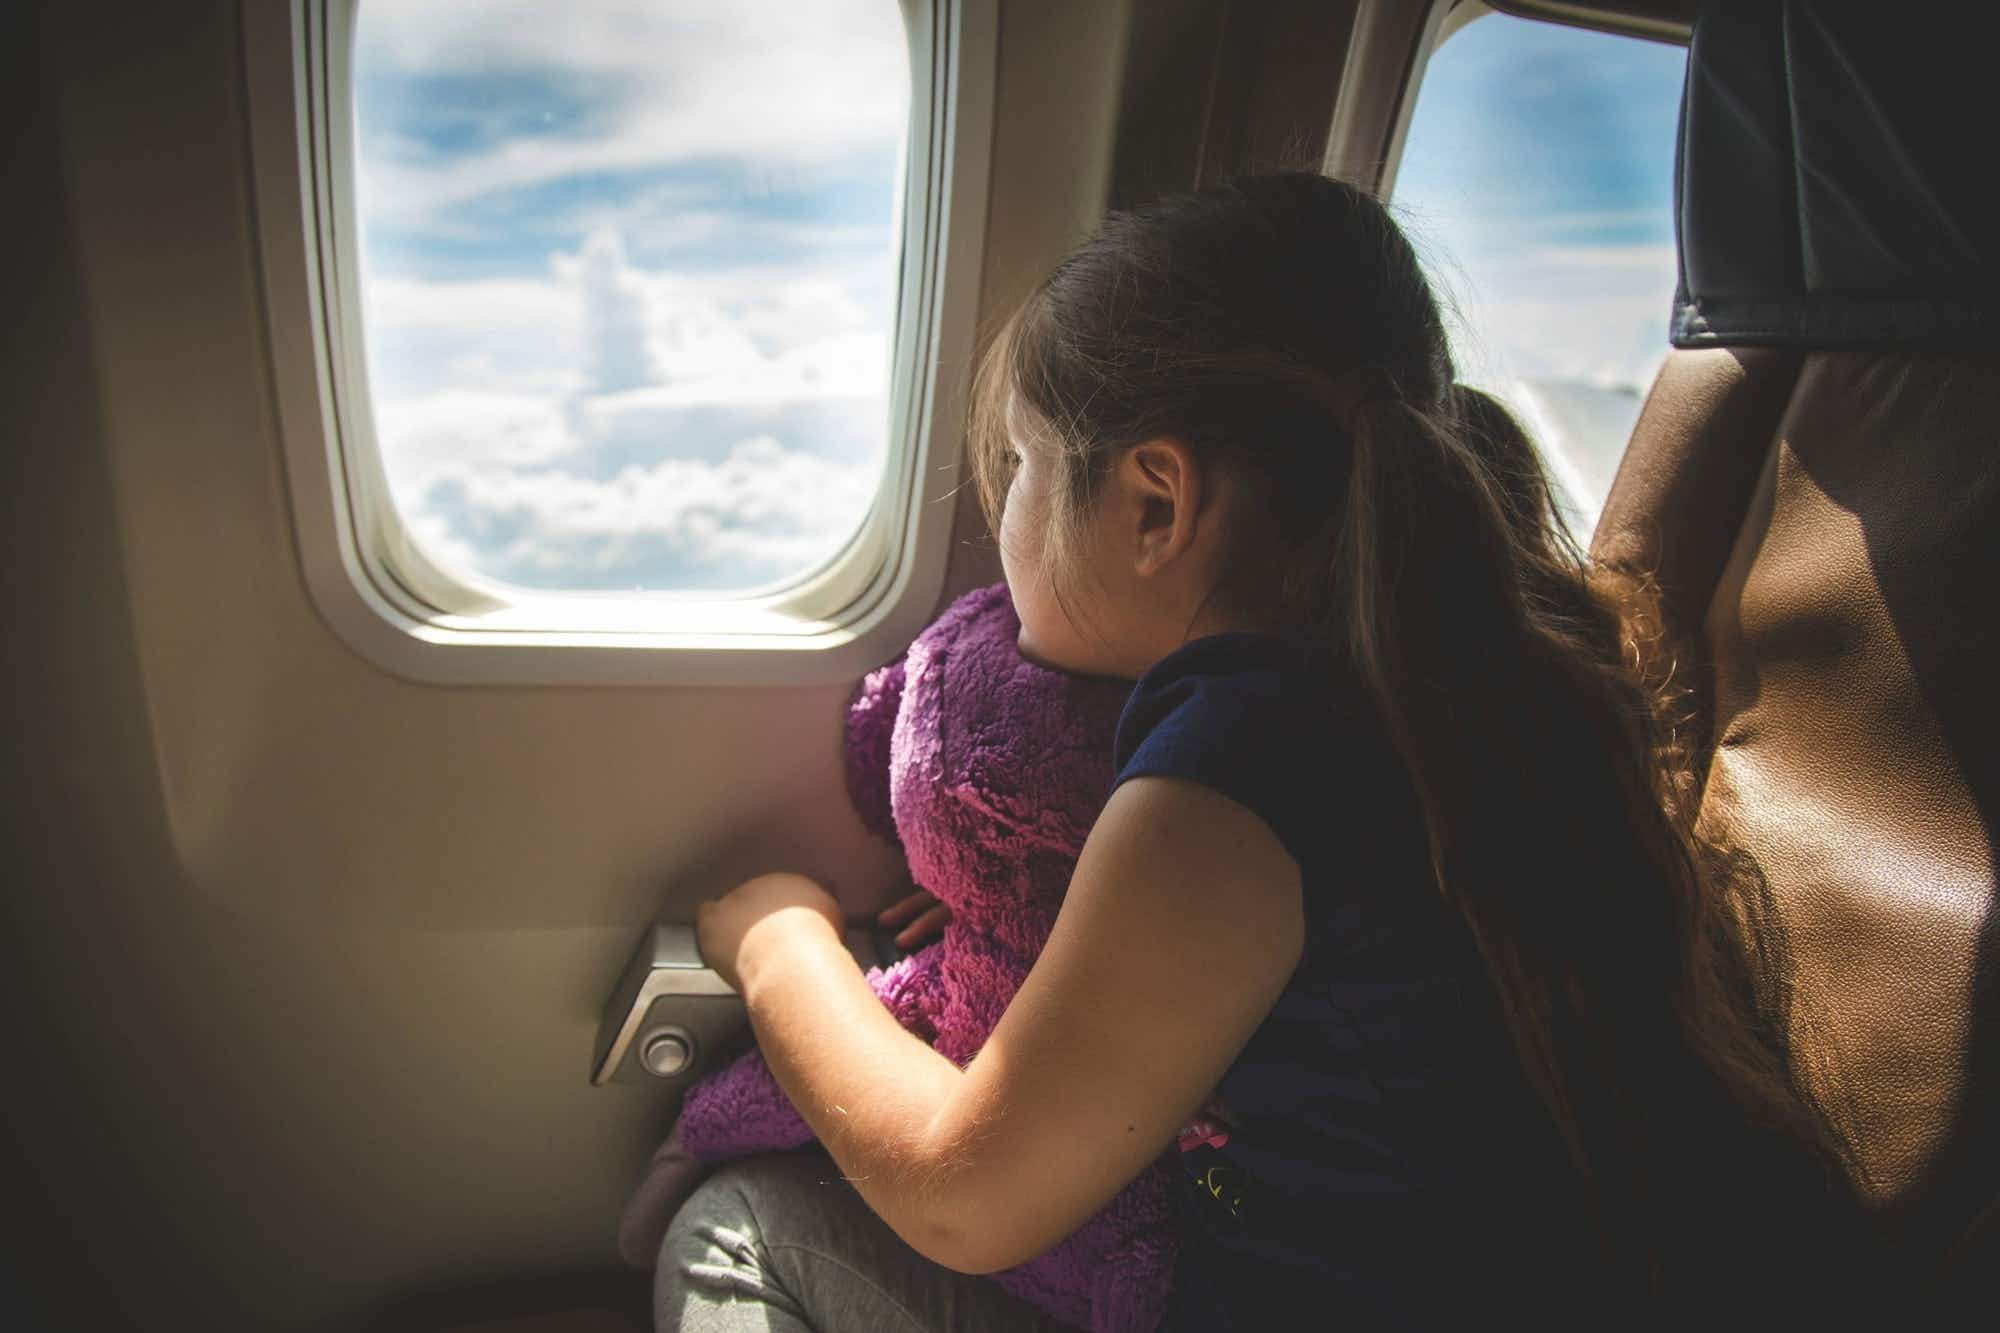 How do you keep children entertained and quiet on the plane?